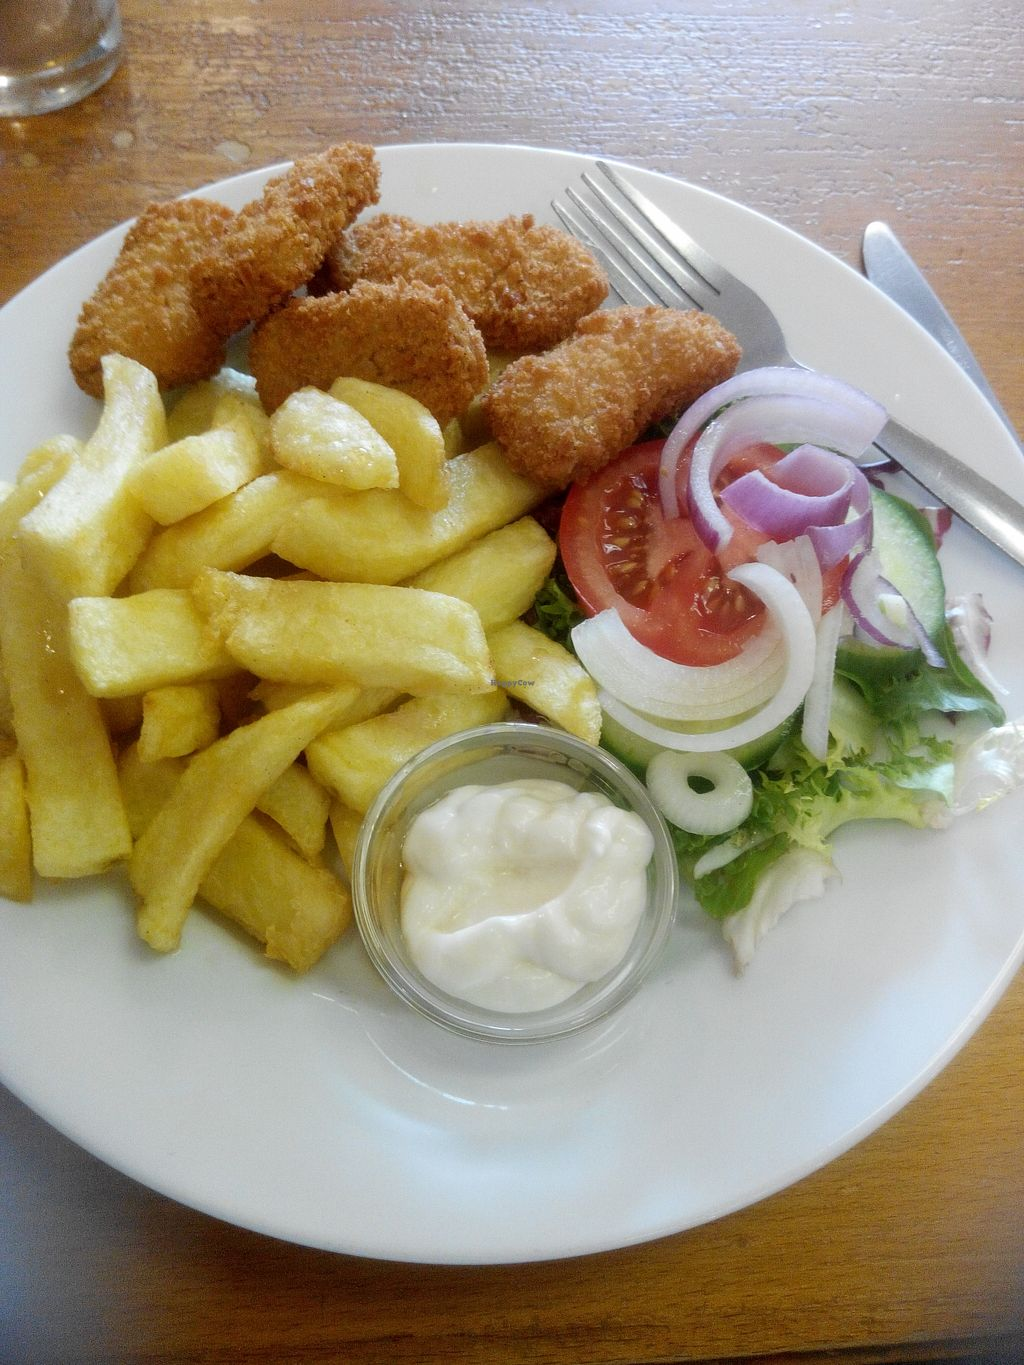 """Photo of Barnacles  by <a href=""""/members/profile/RJS"""">RJS</a> <br/>Chicken Style Nuggets and Chips <br/> November 1, 2015  - <a href='/contact/abuse/image/23788/123435'>Report</a>"""